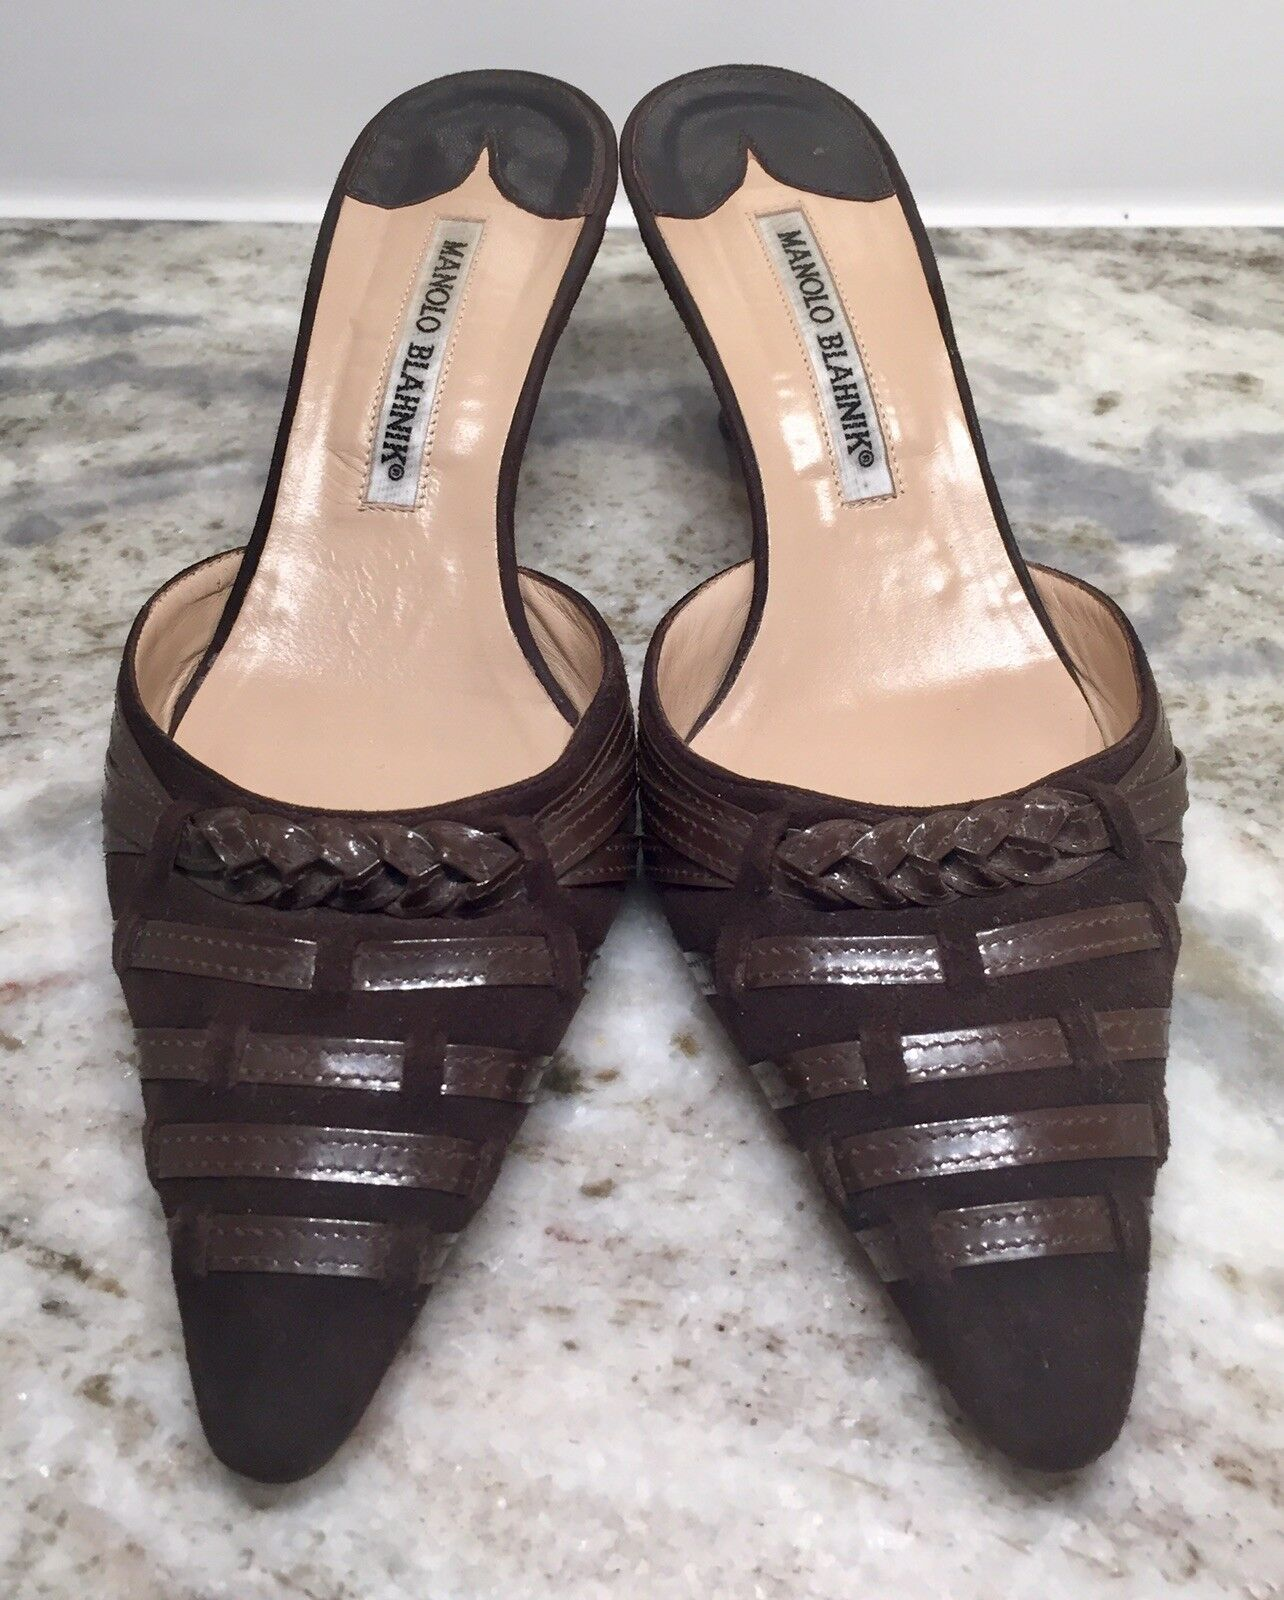 Manolo Blahnik Brown Suede, Woven and Braided Leather Mules, Size 36.5